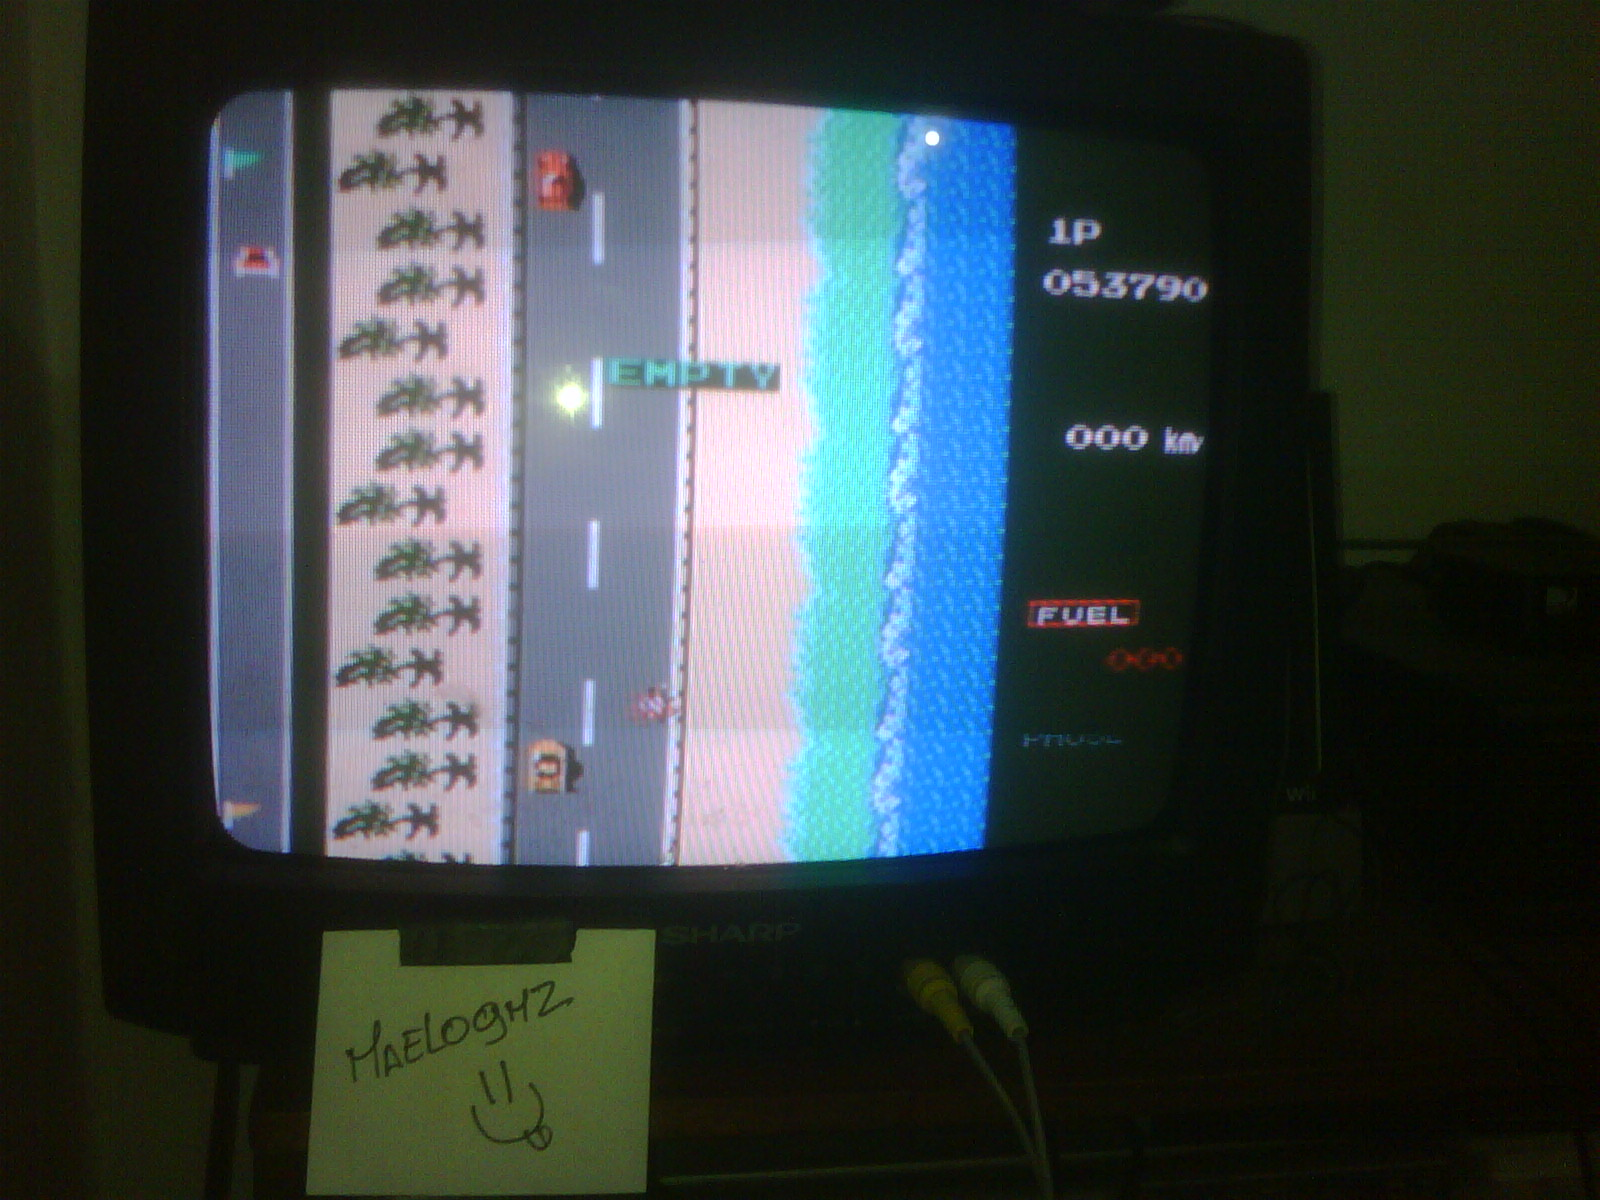 maelogmz: Road Fighter: Level 1 (NES/Famicom Emulated) 53,790 points on 2016-09-17 19:43:53